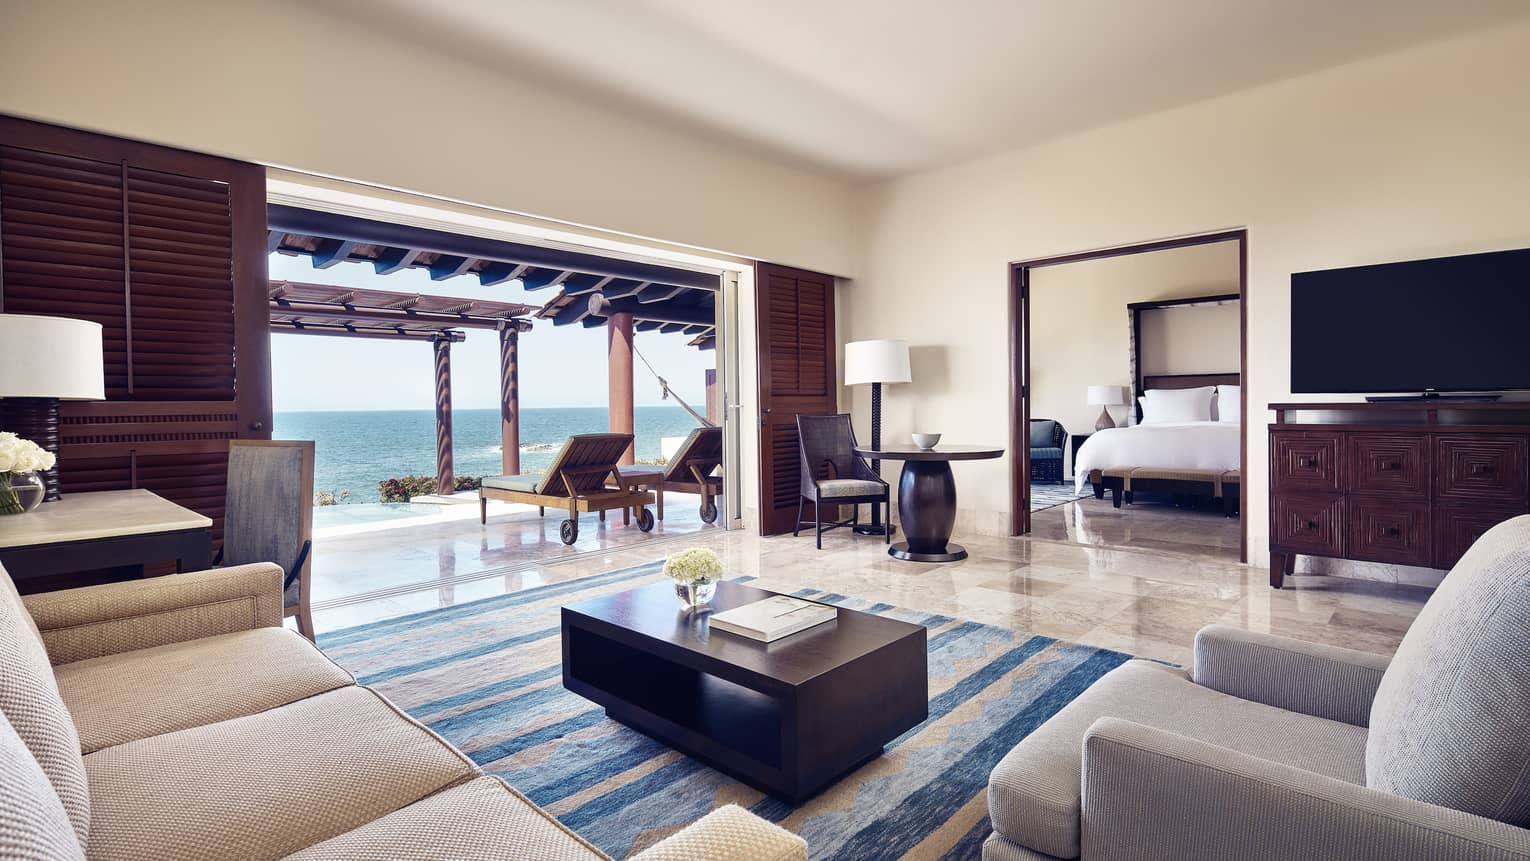 Oceanfront Suite spacious living room, sofas by bedroom door and open wall to patio